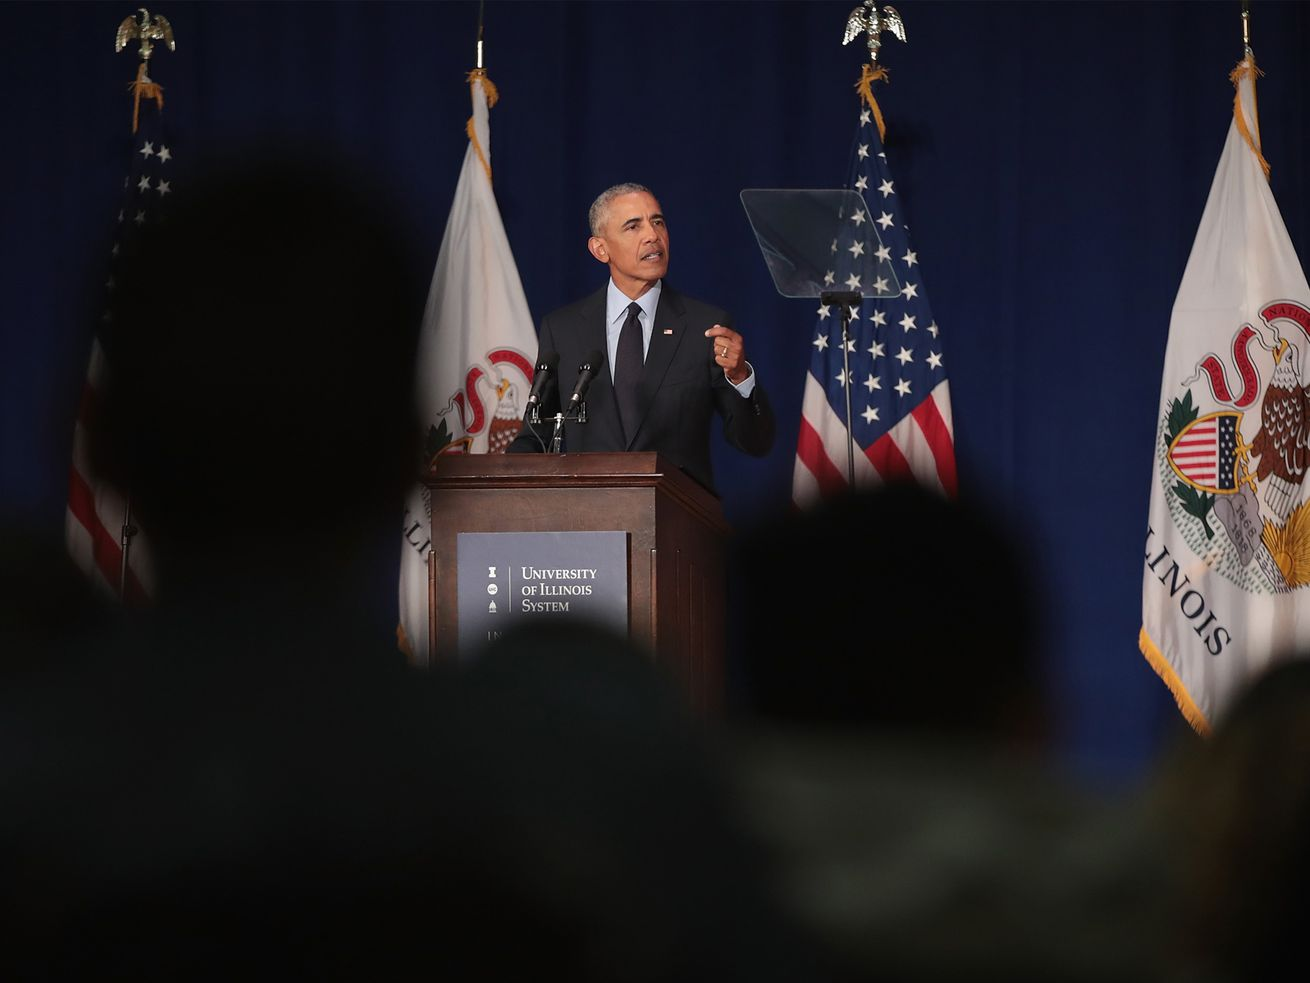 Former President Barack Obama speaks to students at the University of Illinois, where he accepted the Paul H. Douglas Award for Ethics in Government on September 7, 2018.